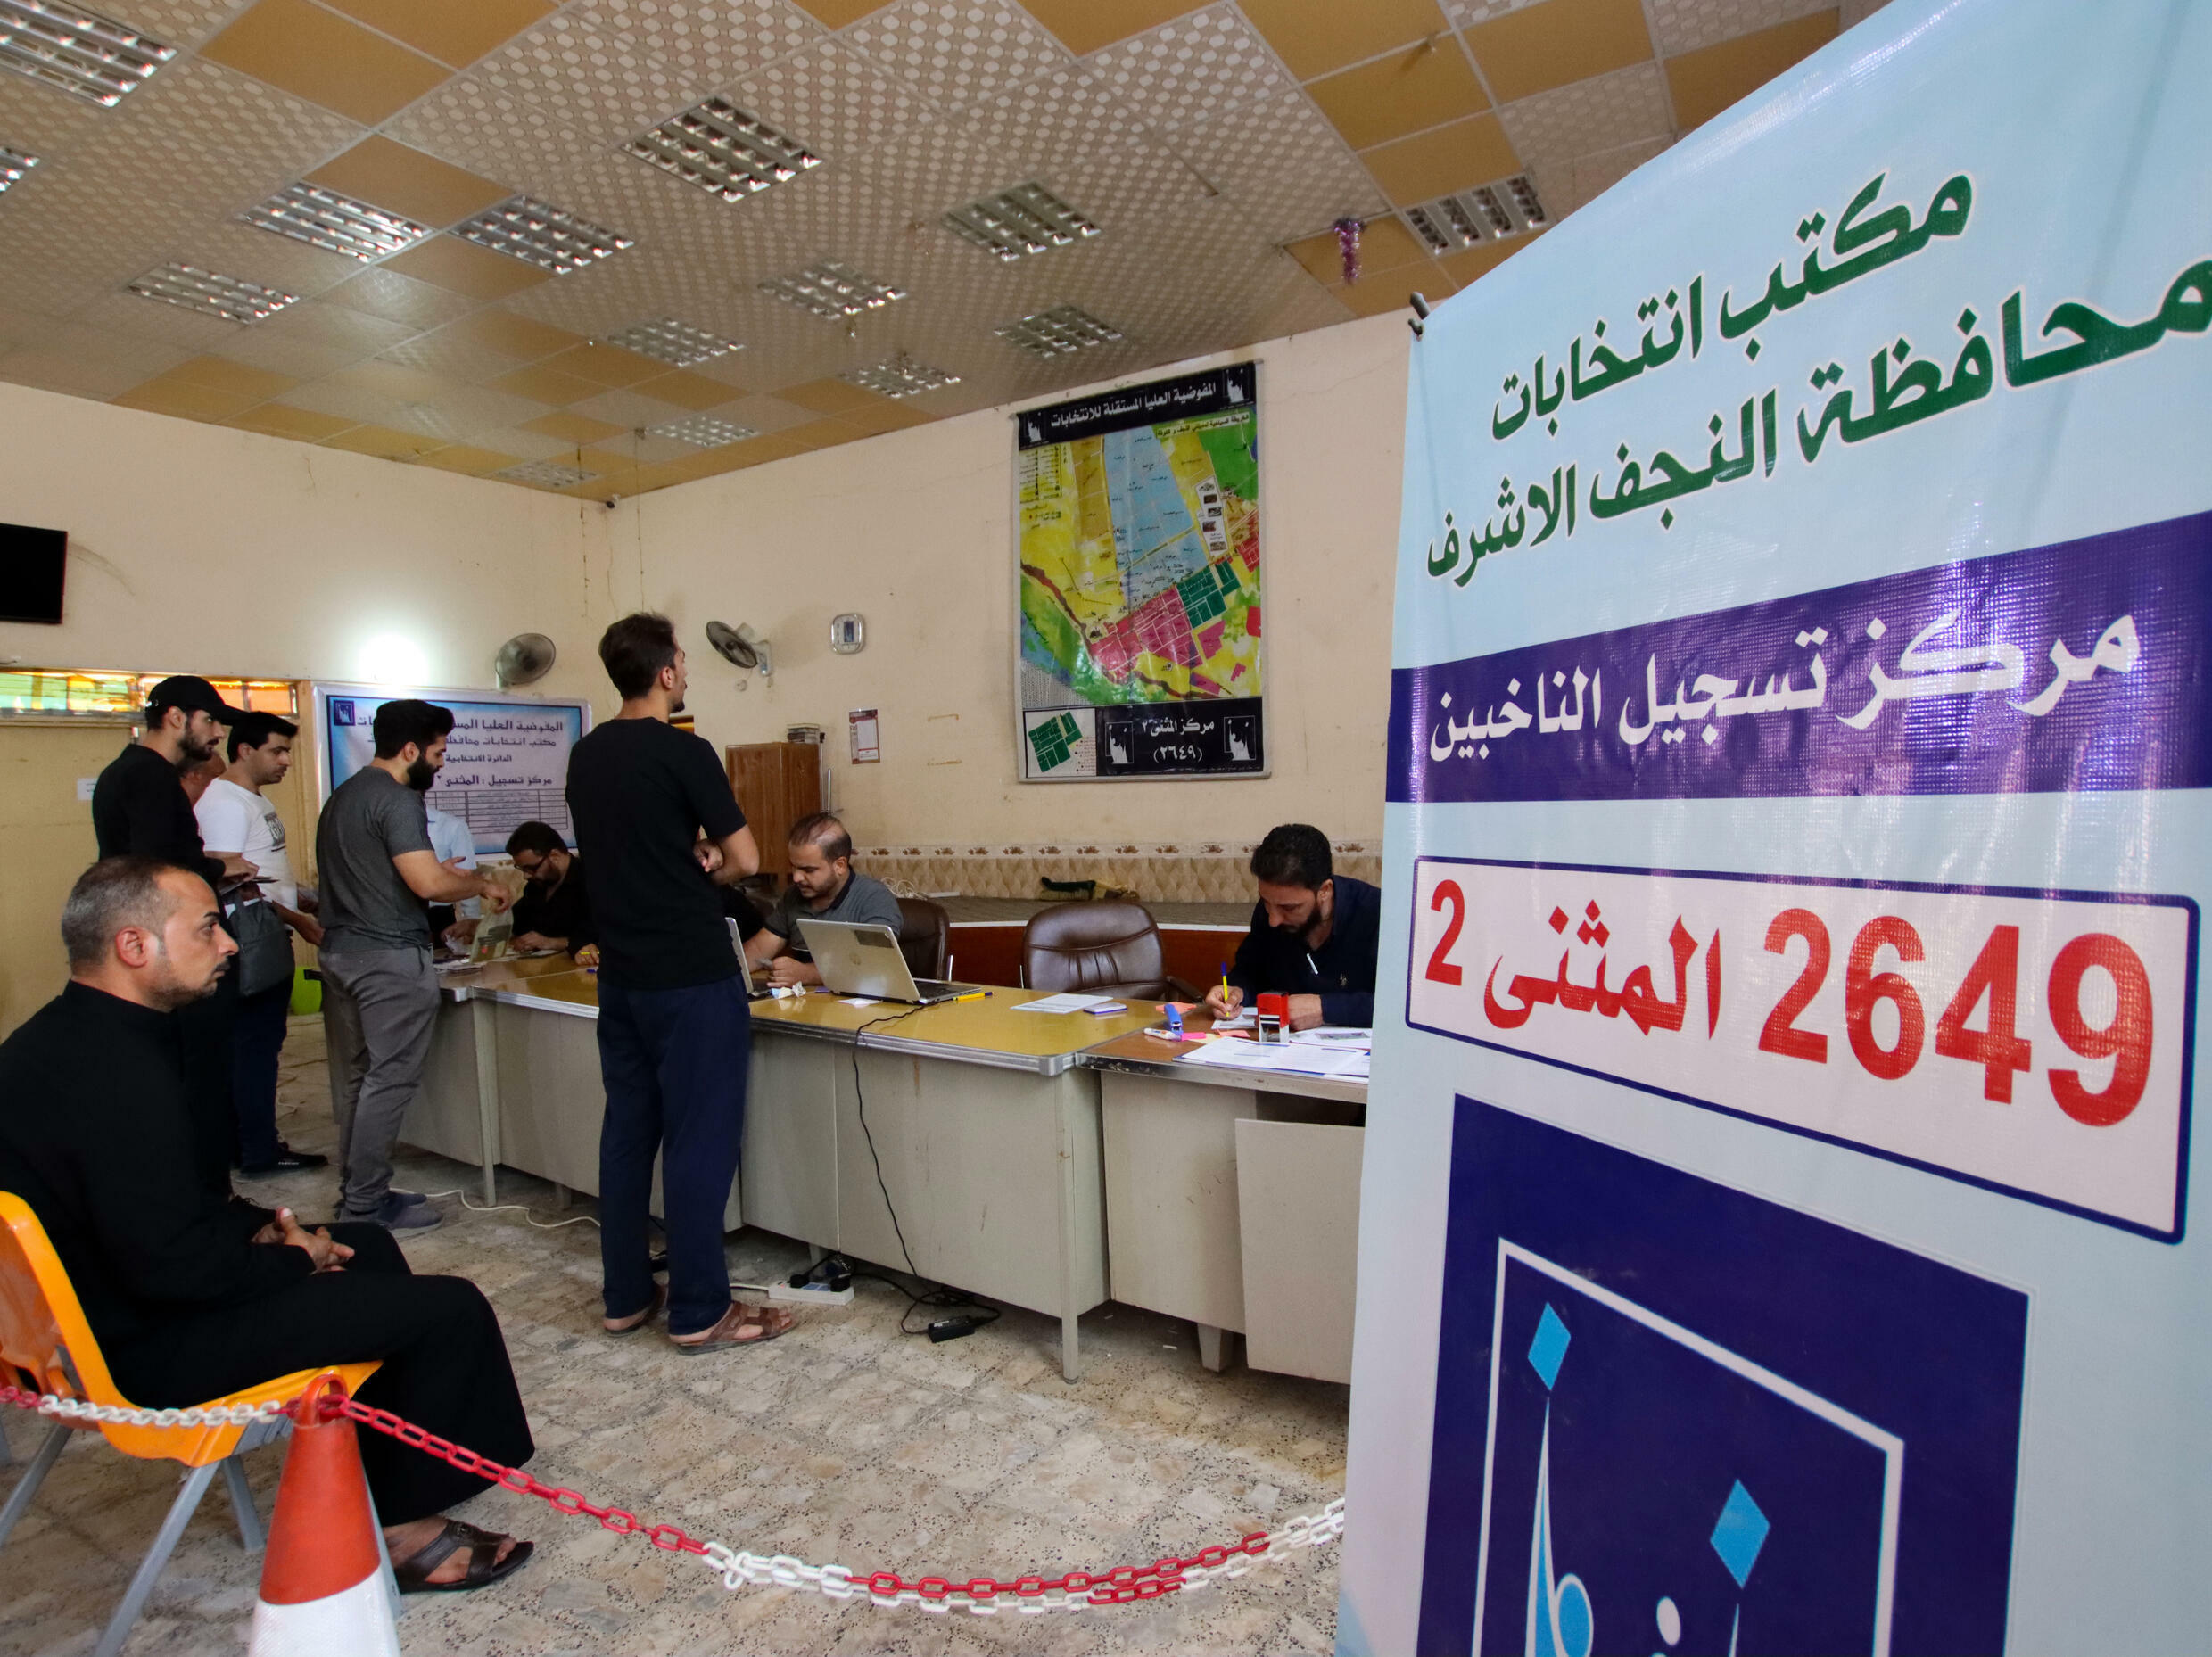 Iraqis in Najaf register for voting cards ahead of parliamentary elections